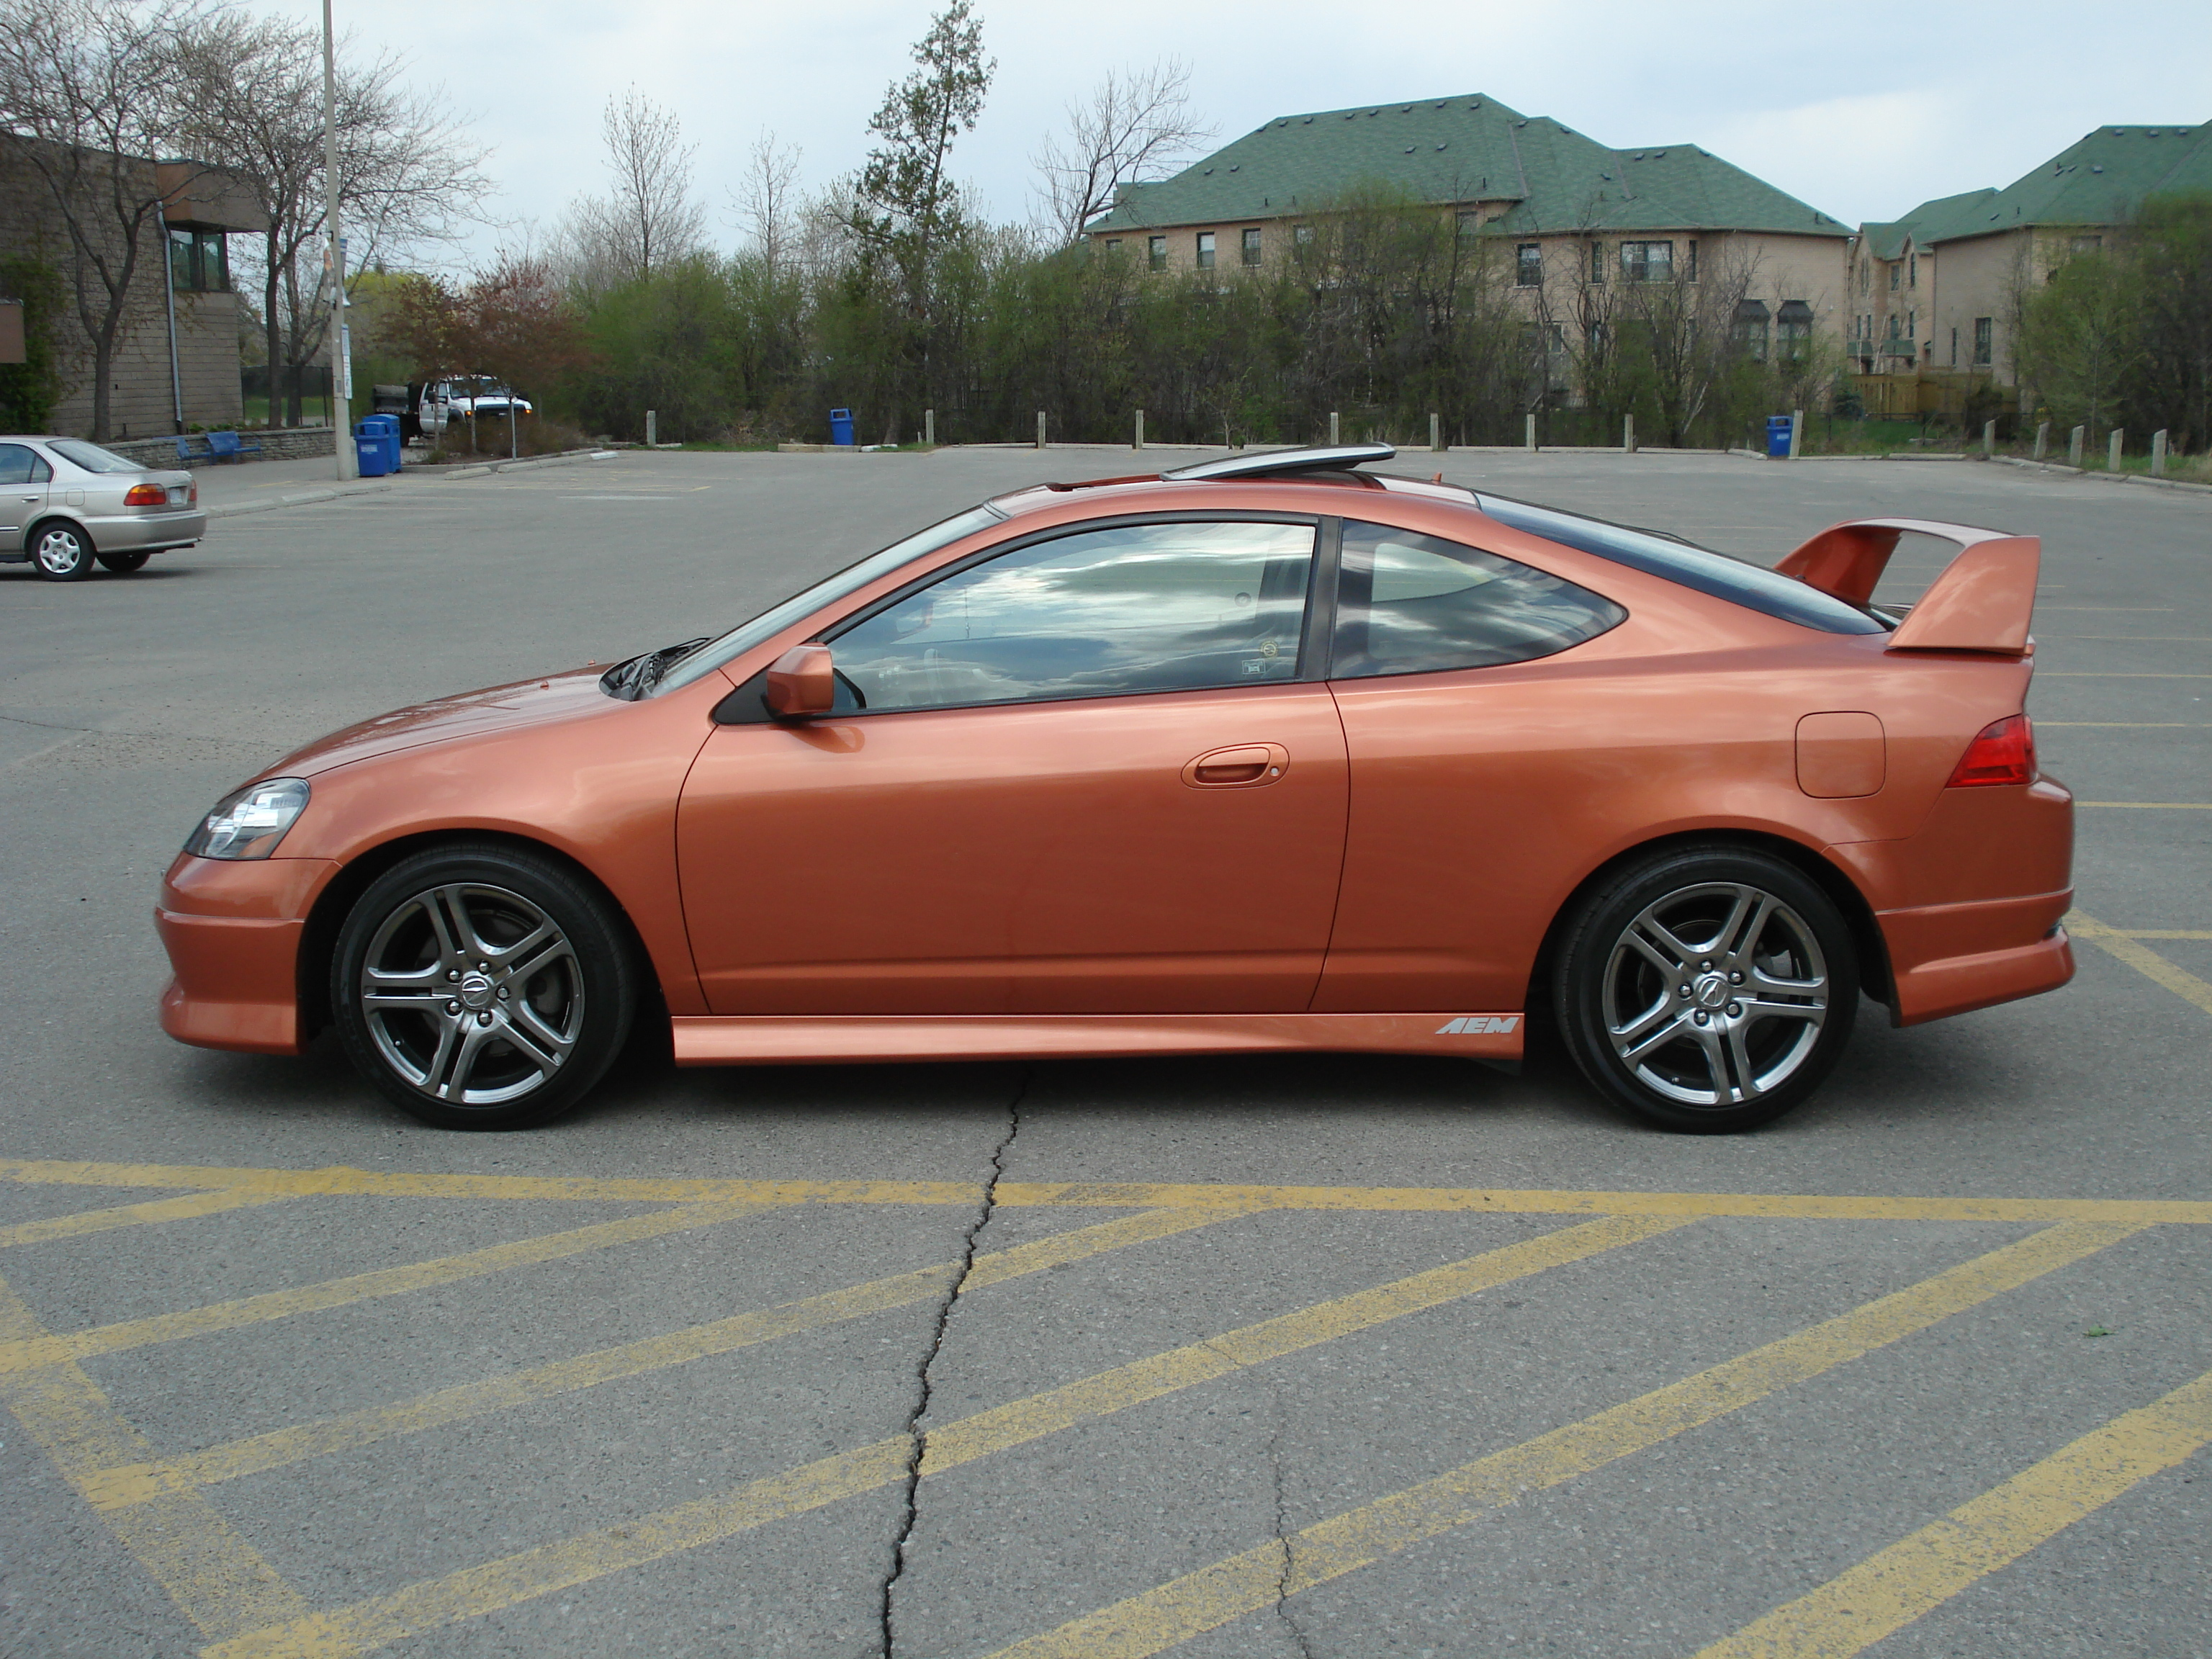 canadianrsx06 39 s 2006 acura rsx in toronto on. Black Bedroom Furniture Sets. Home Design Ideas